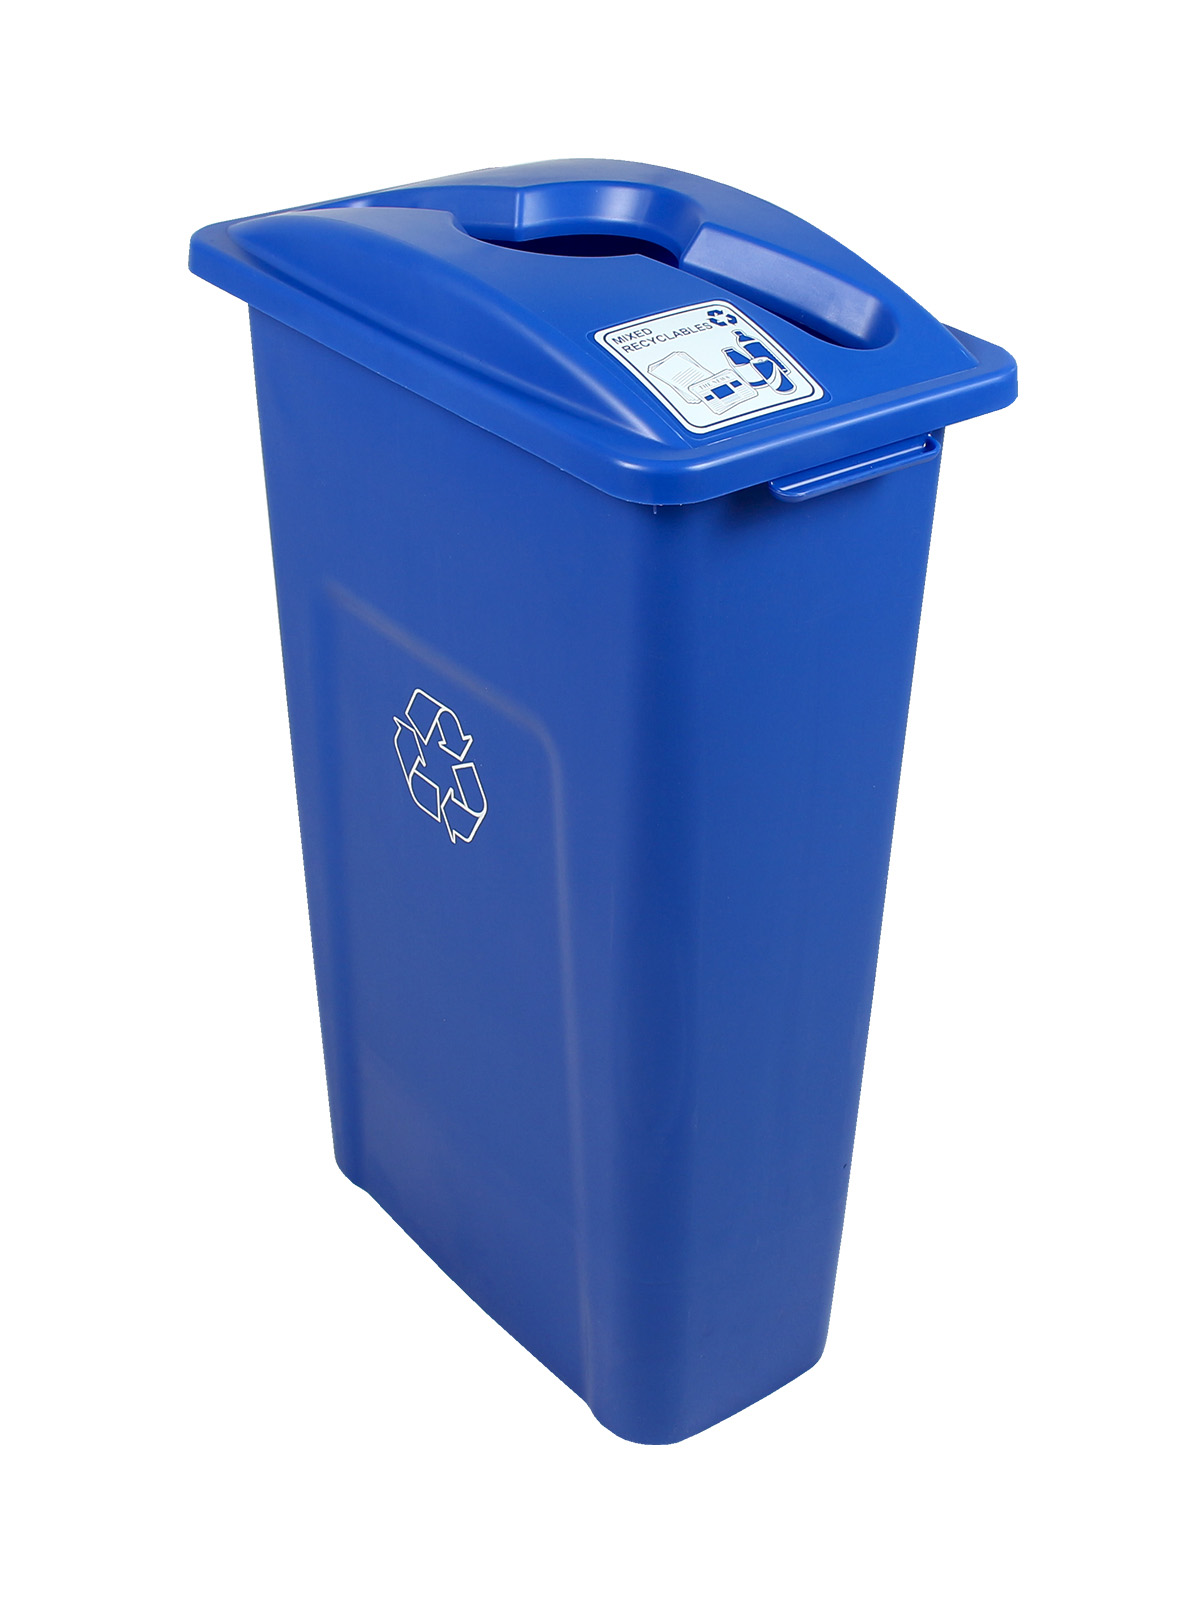 WASTE WATCHER - Single - Mixed Recyclables - Mixed - Blue